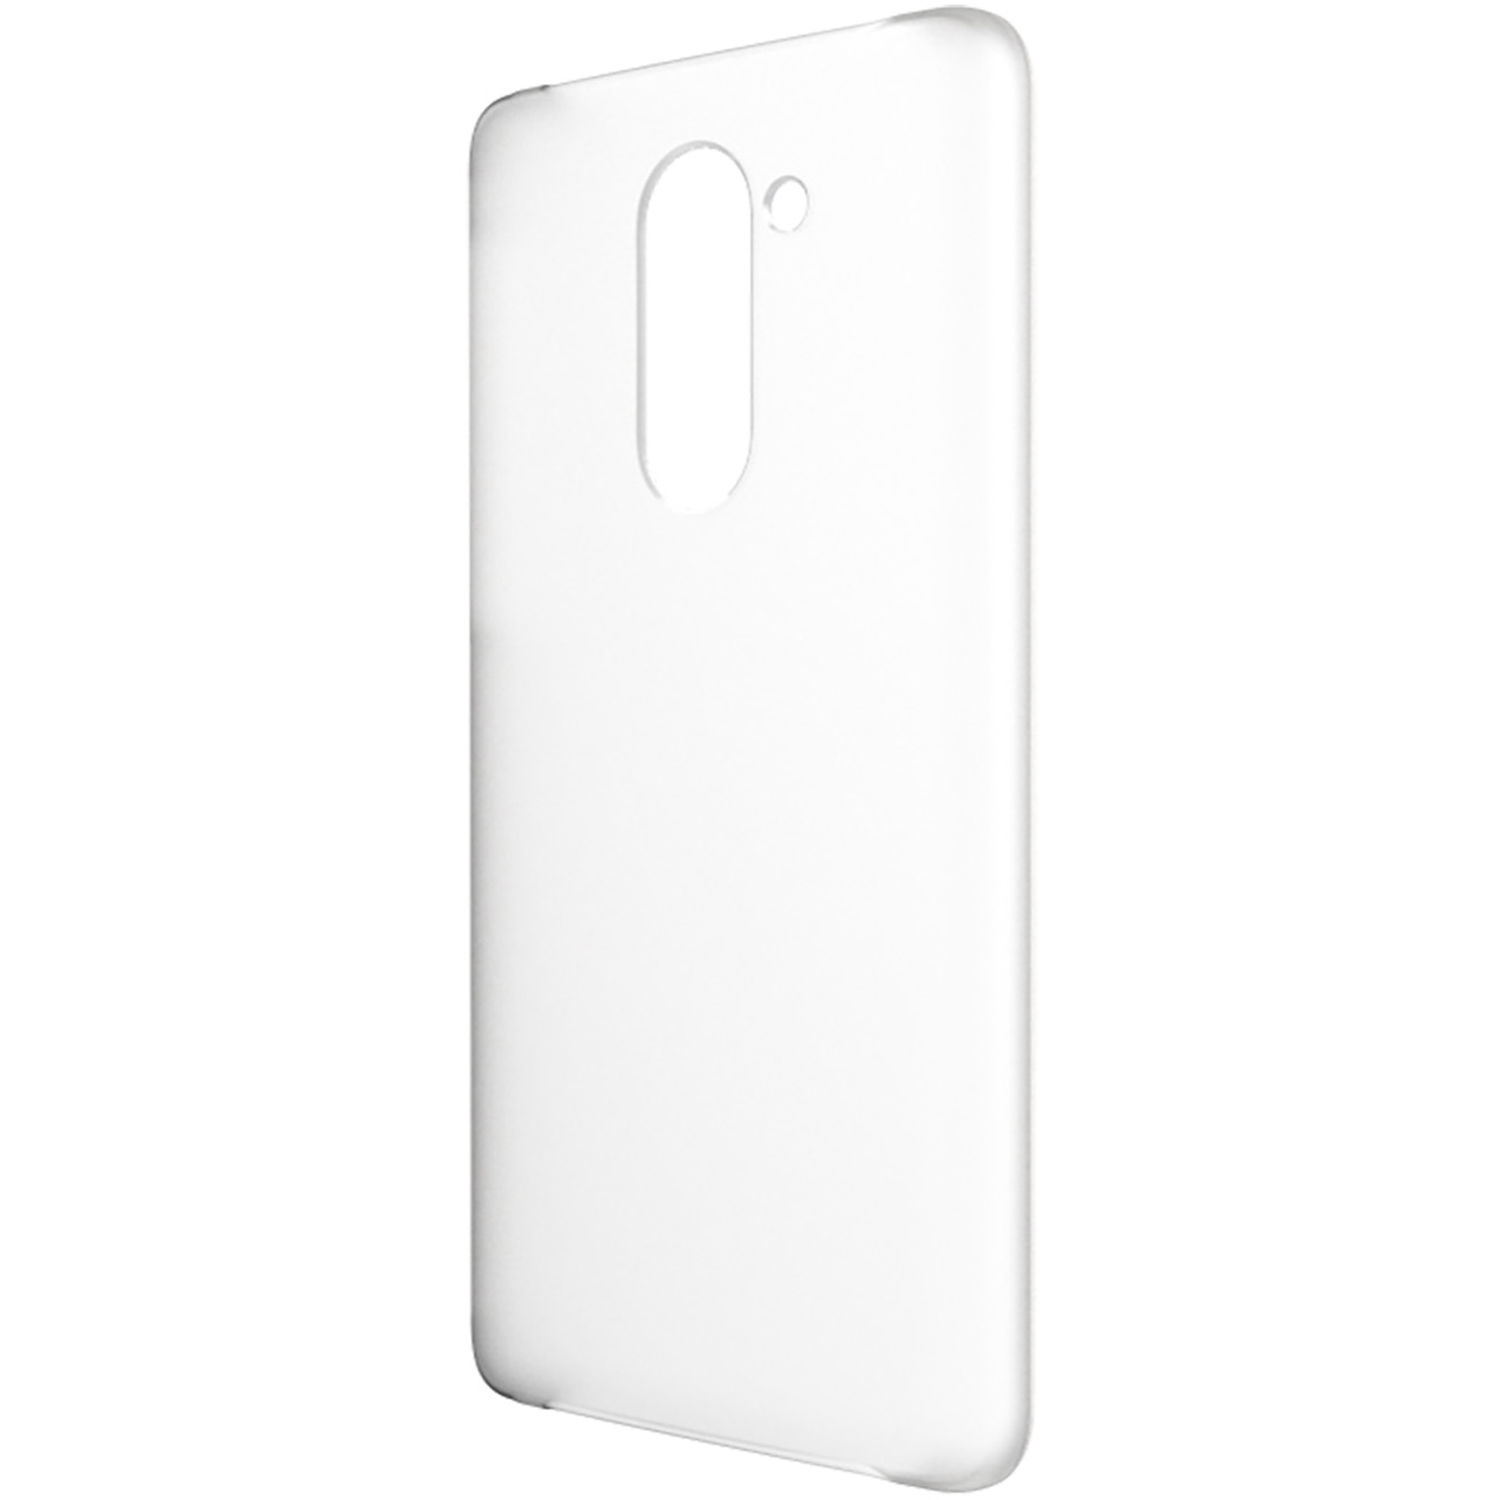 Huawei Honor 6x Case (Translucent)